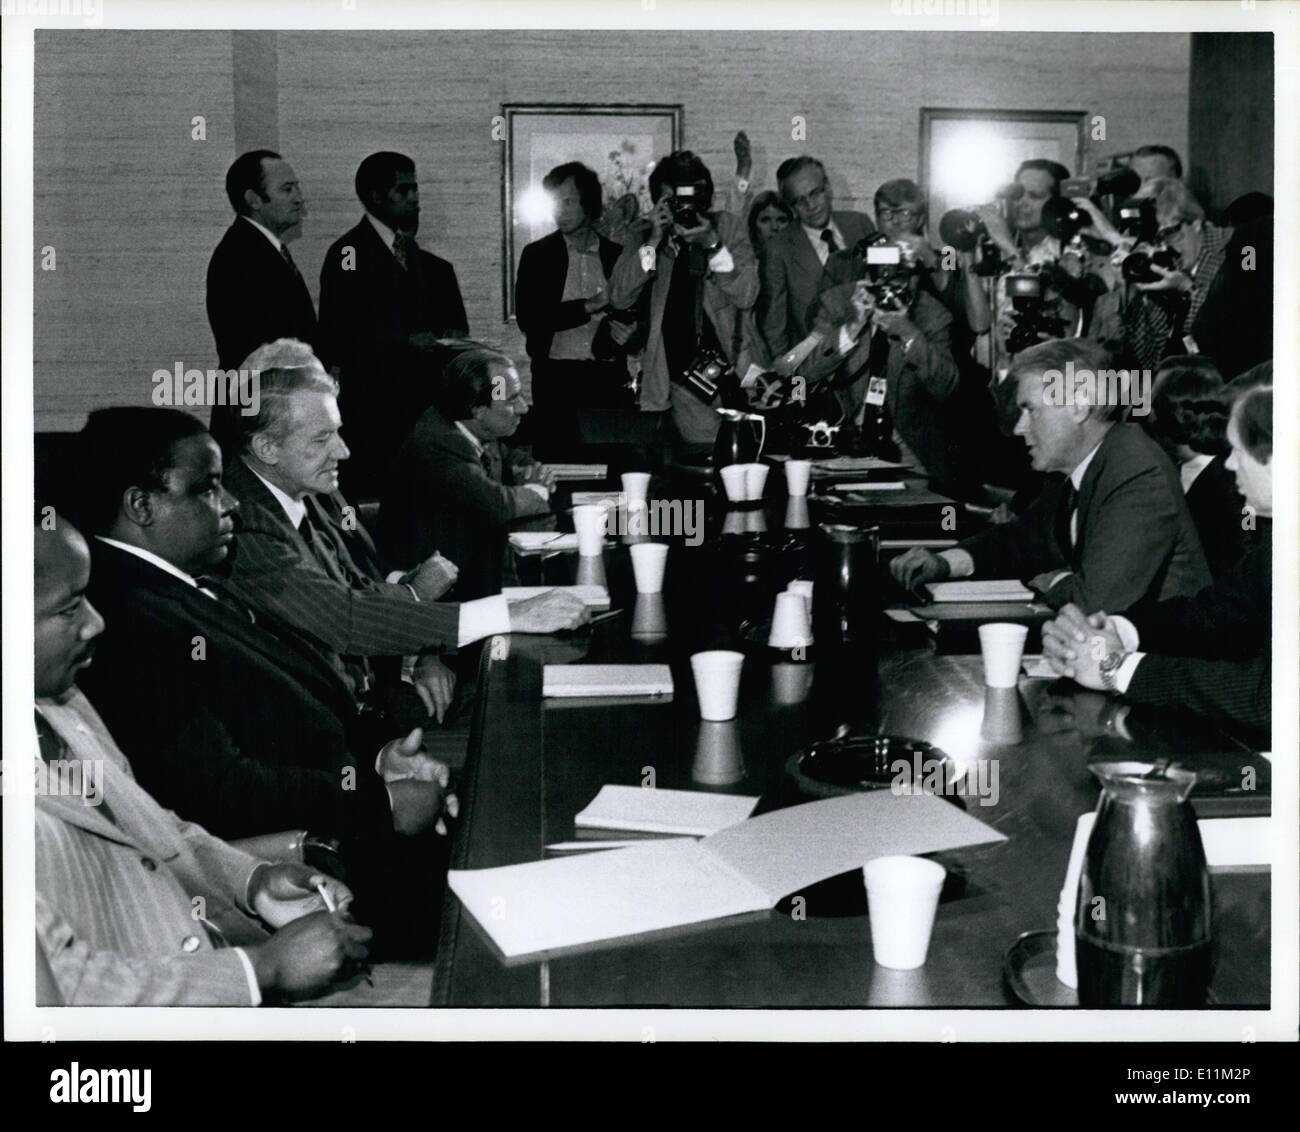 Oct. 10, 1978 - State Dept. meeting at Sec. Vance. - Stock Image